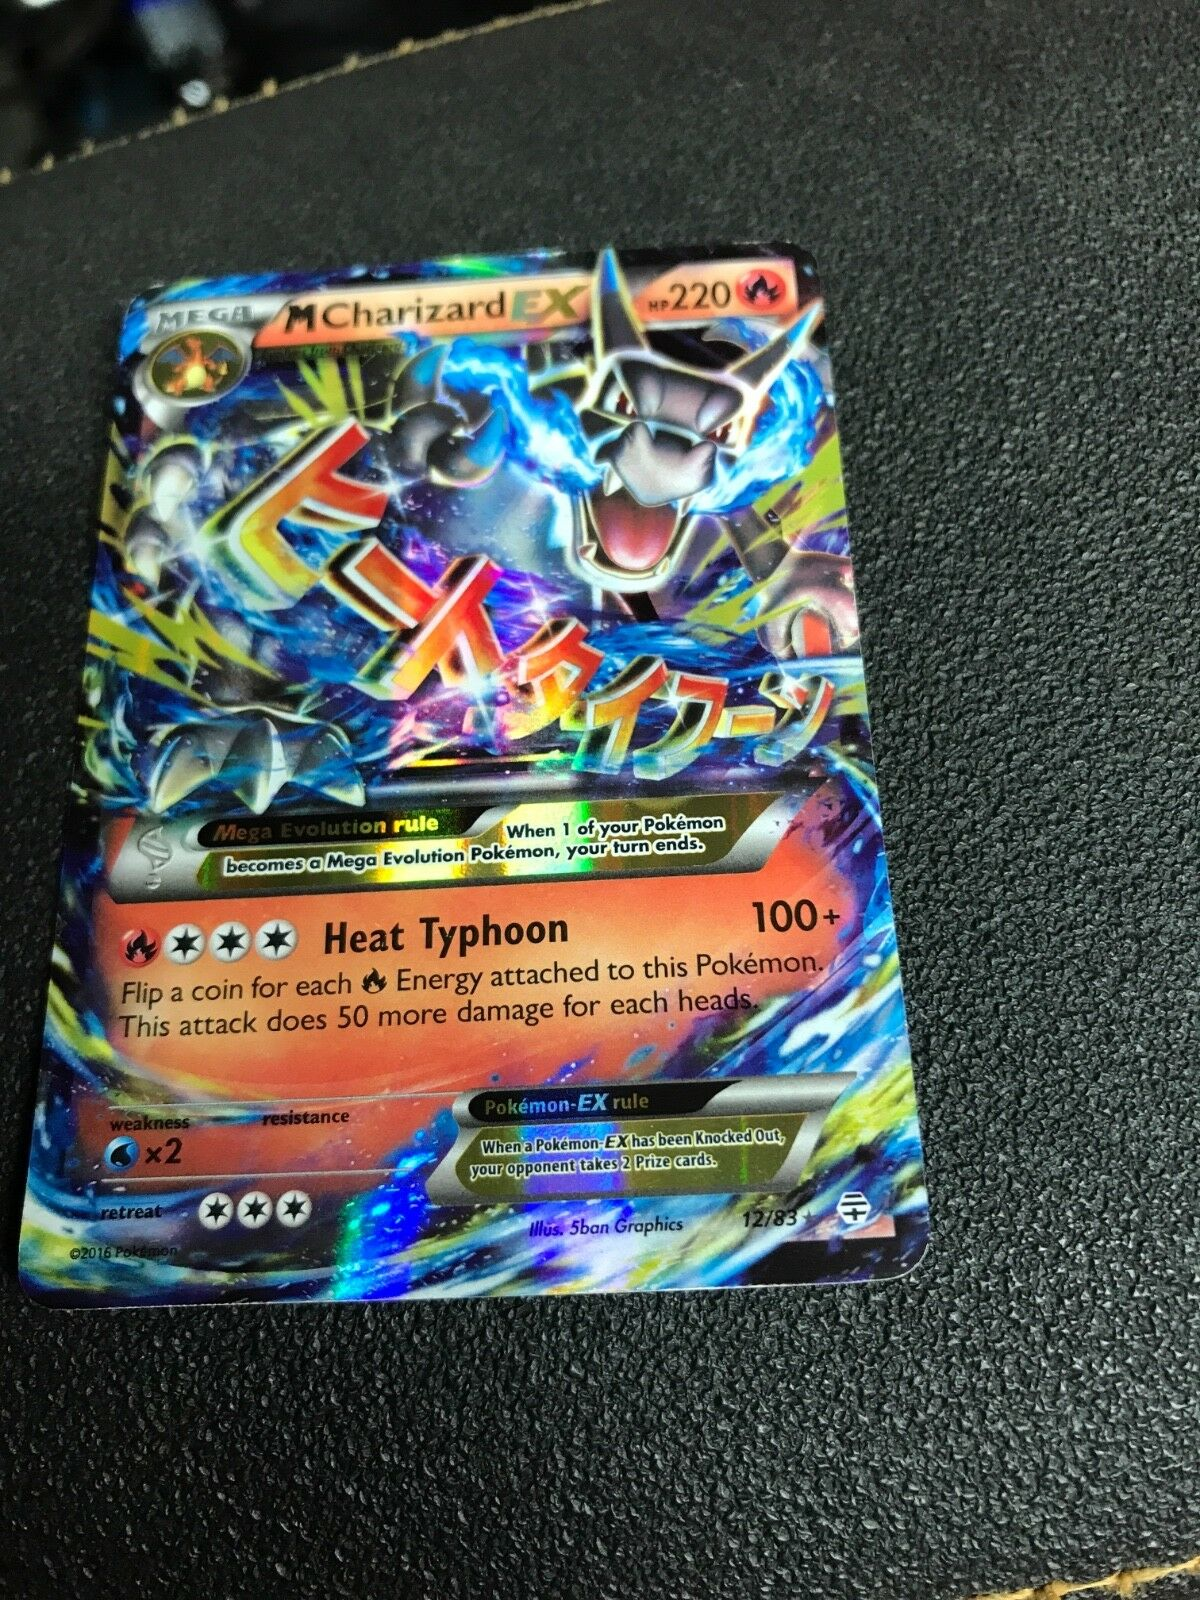 One bluee mega charzard and one bluee bluee bluee mega charzard.They are very rare cards 6f11d1